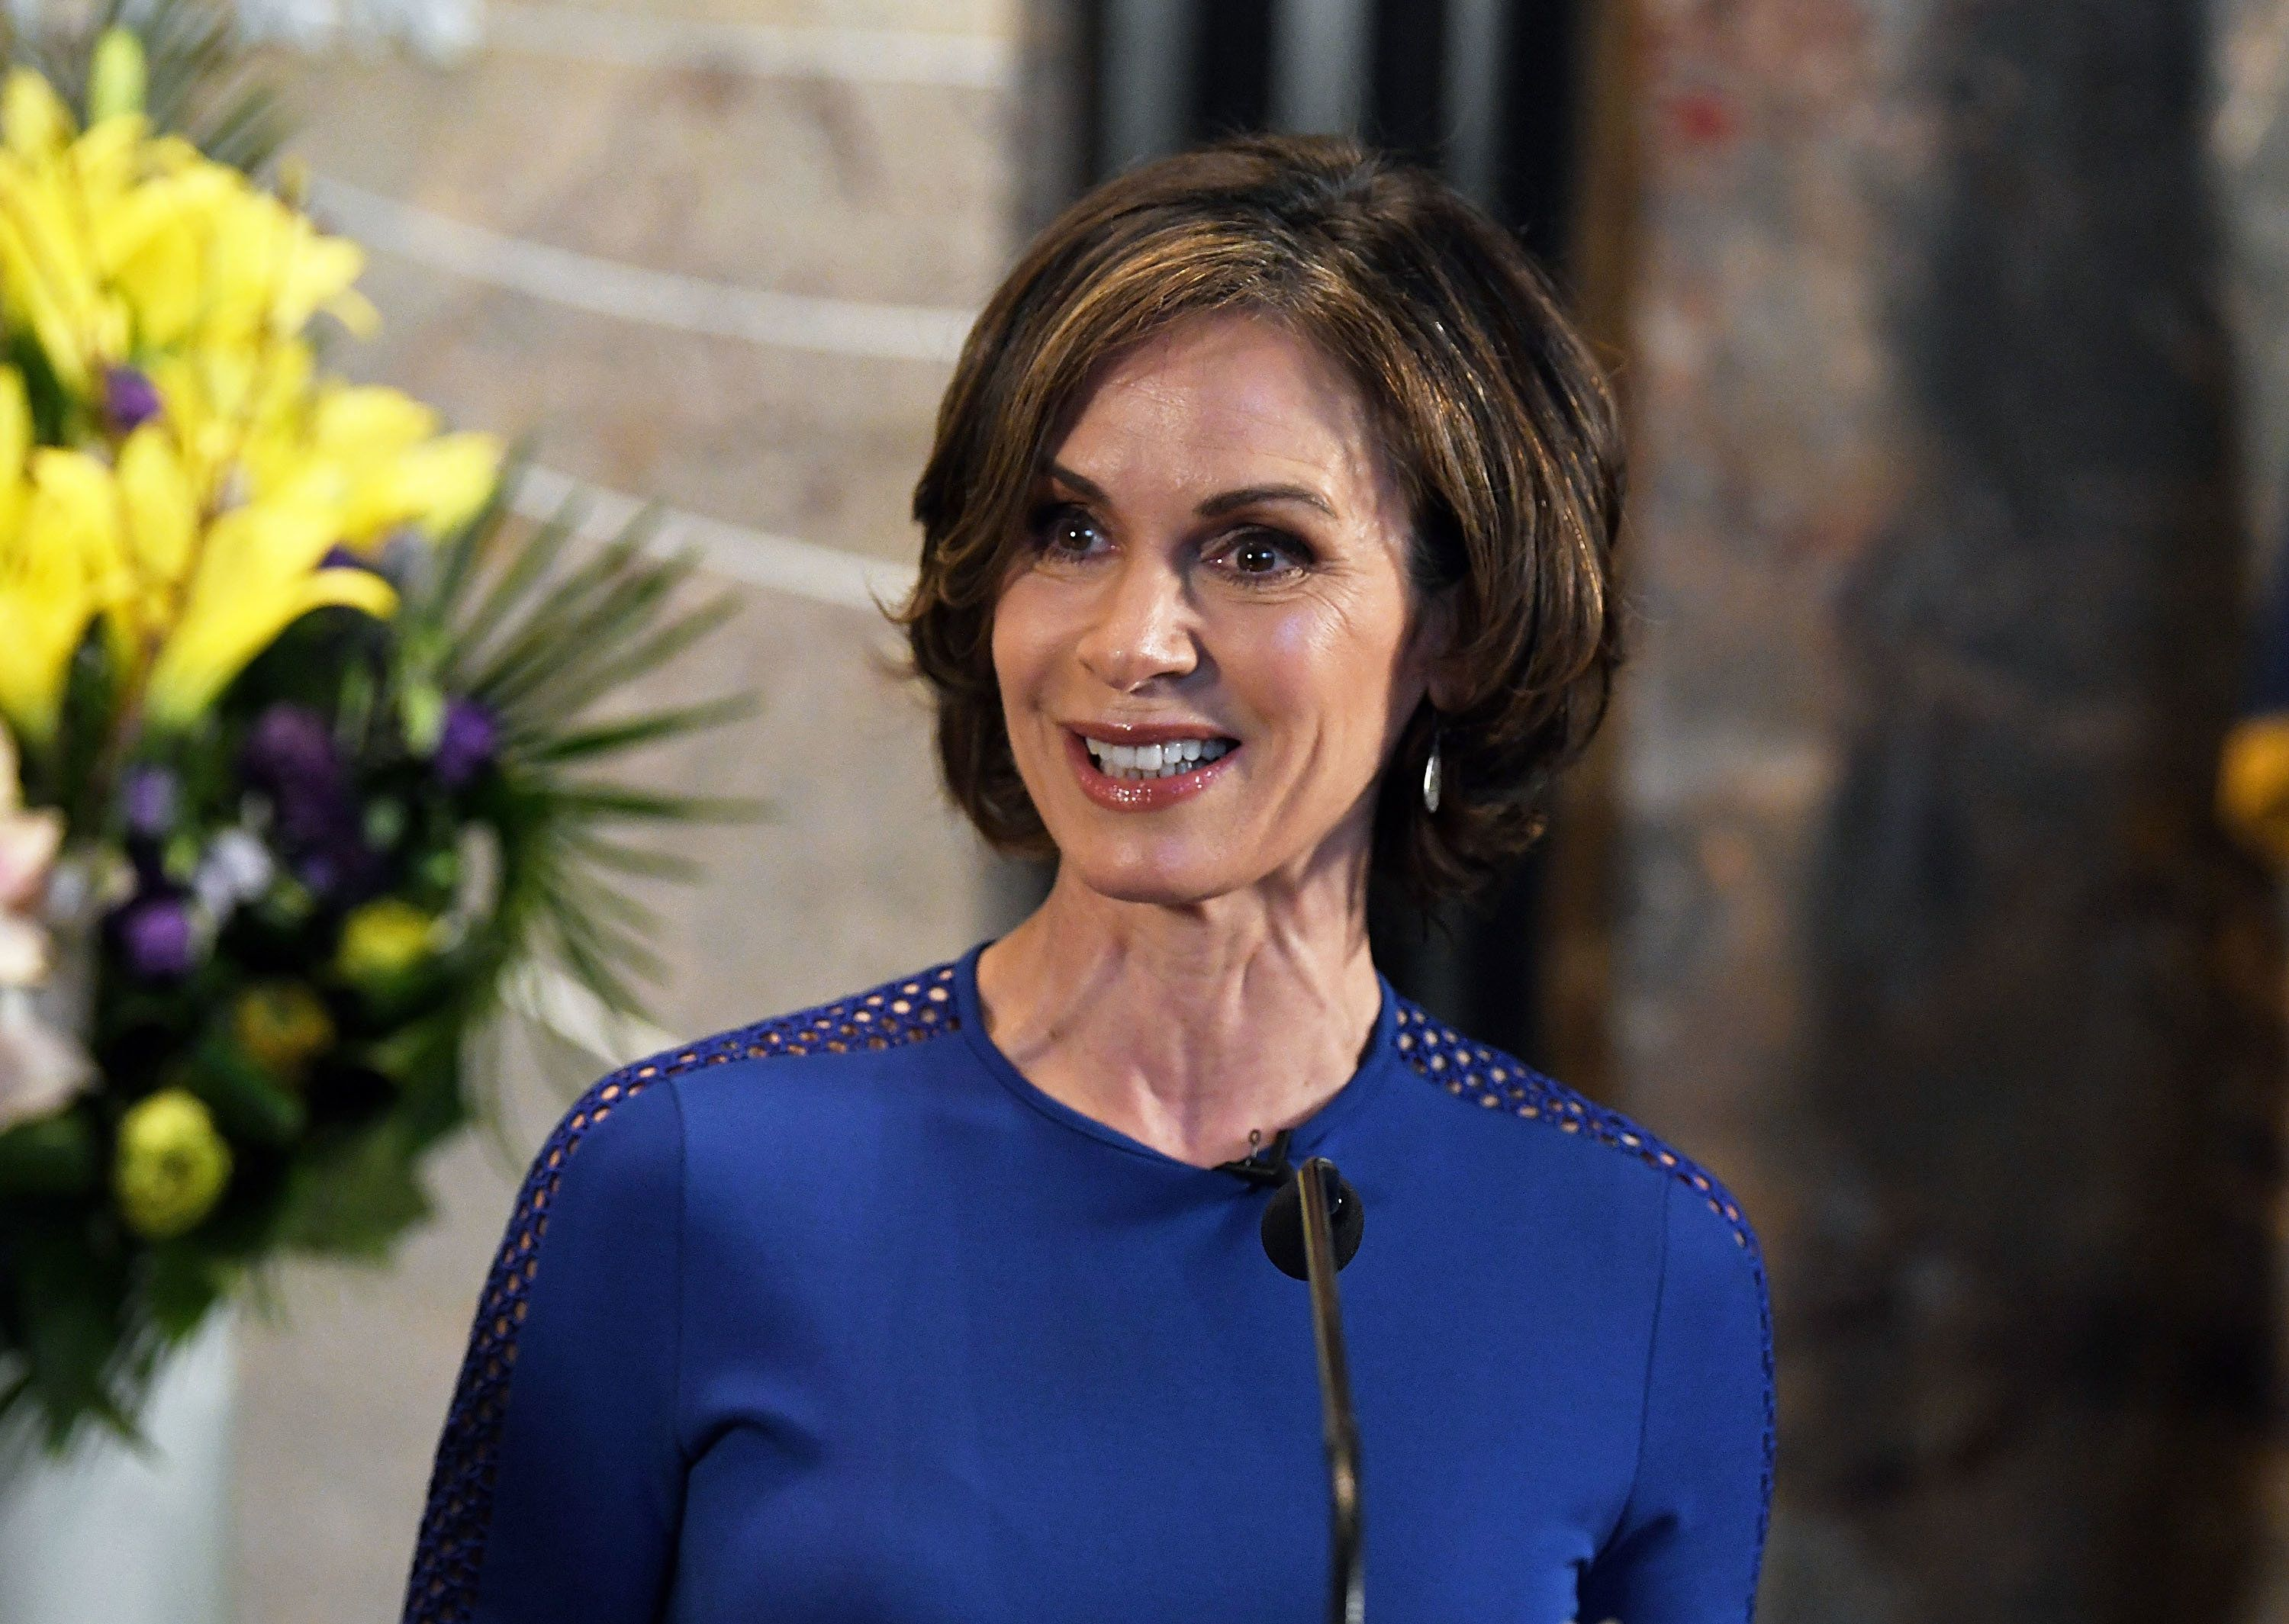 Longtime ABC News anchor Elizabeth Vargas to exit the network in May